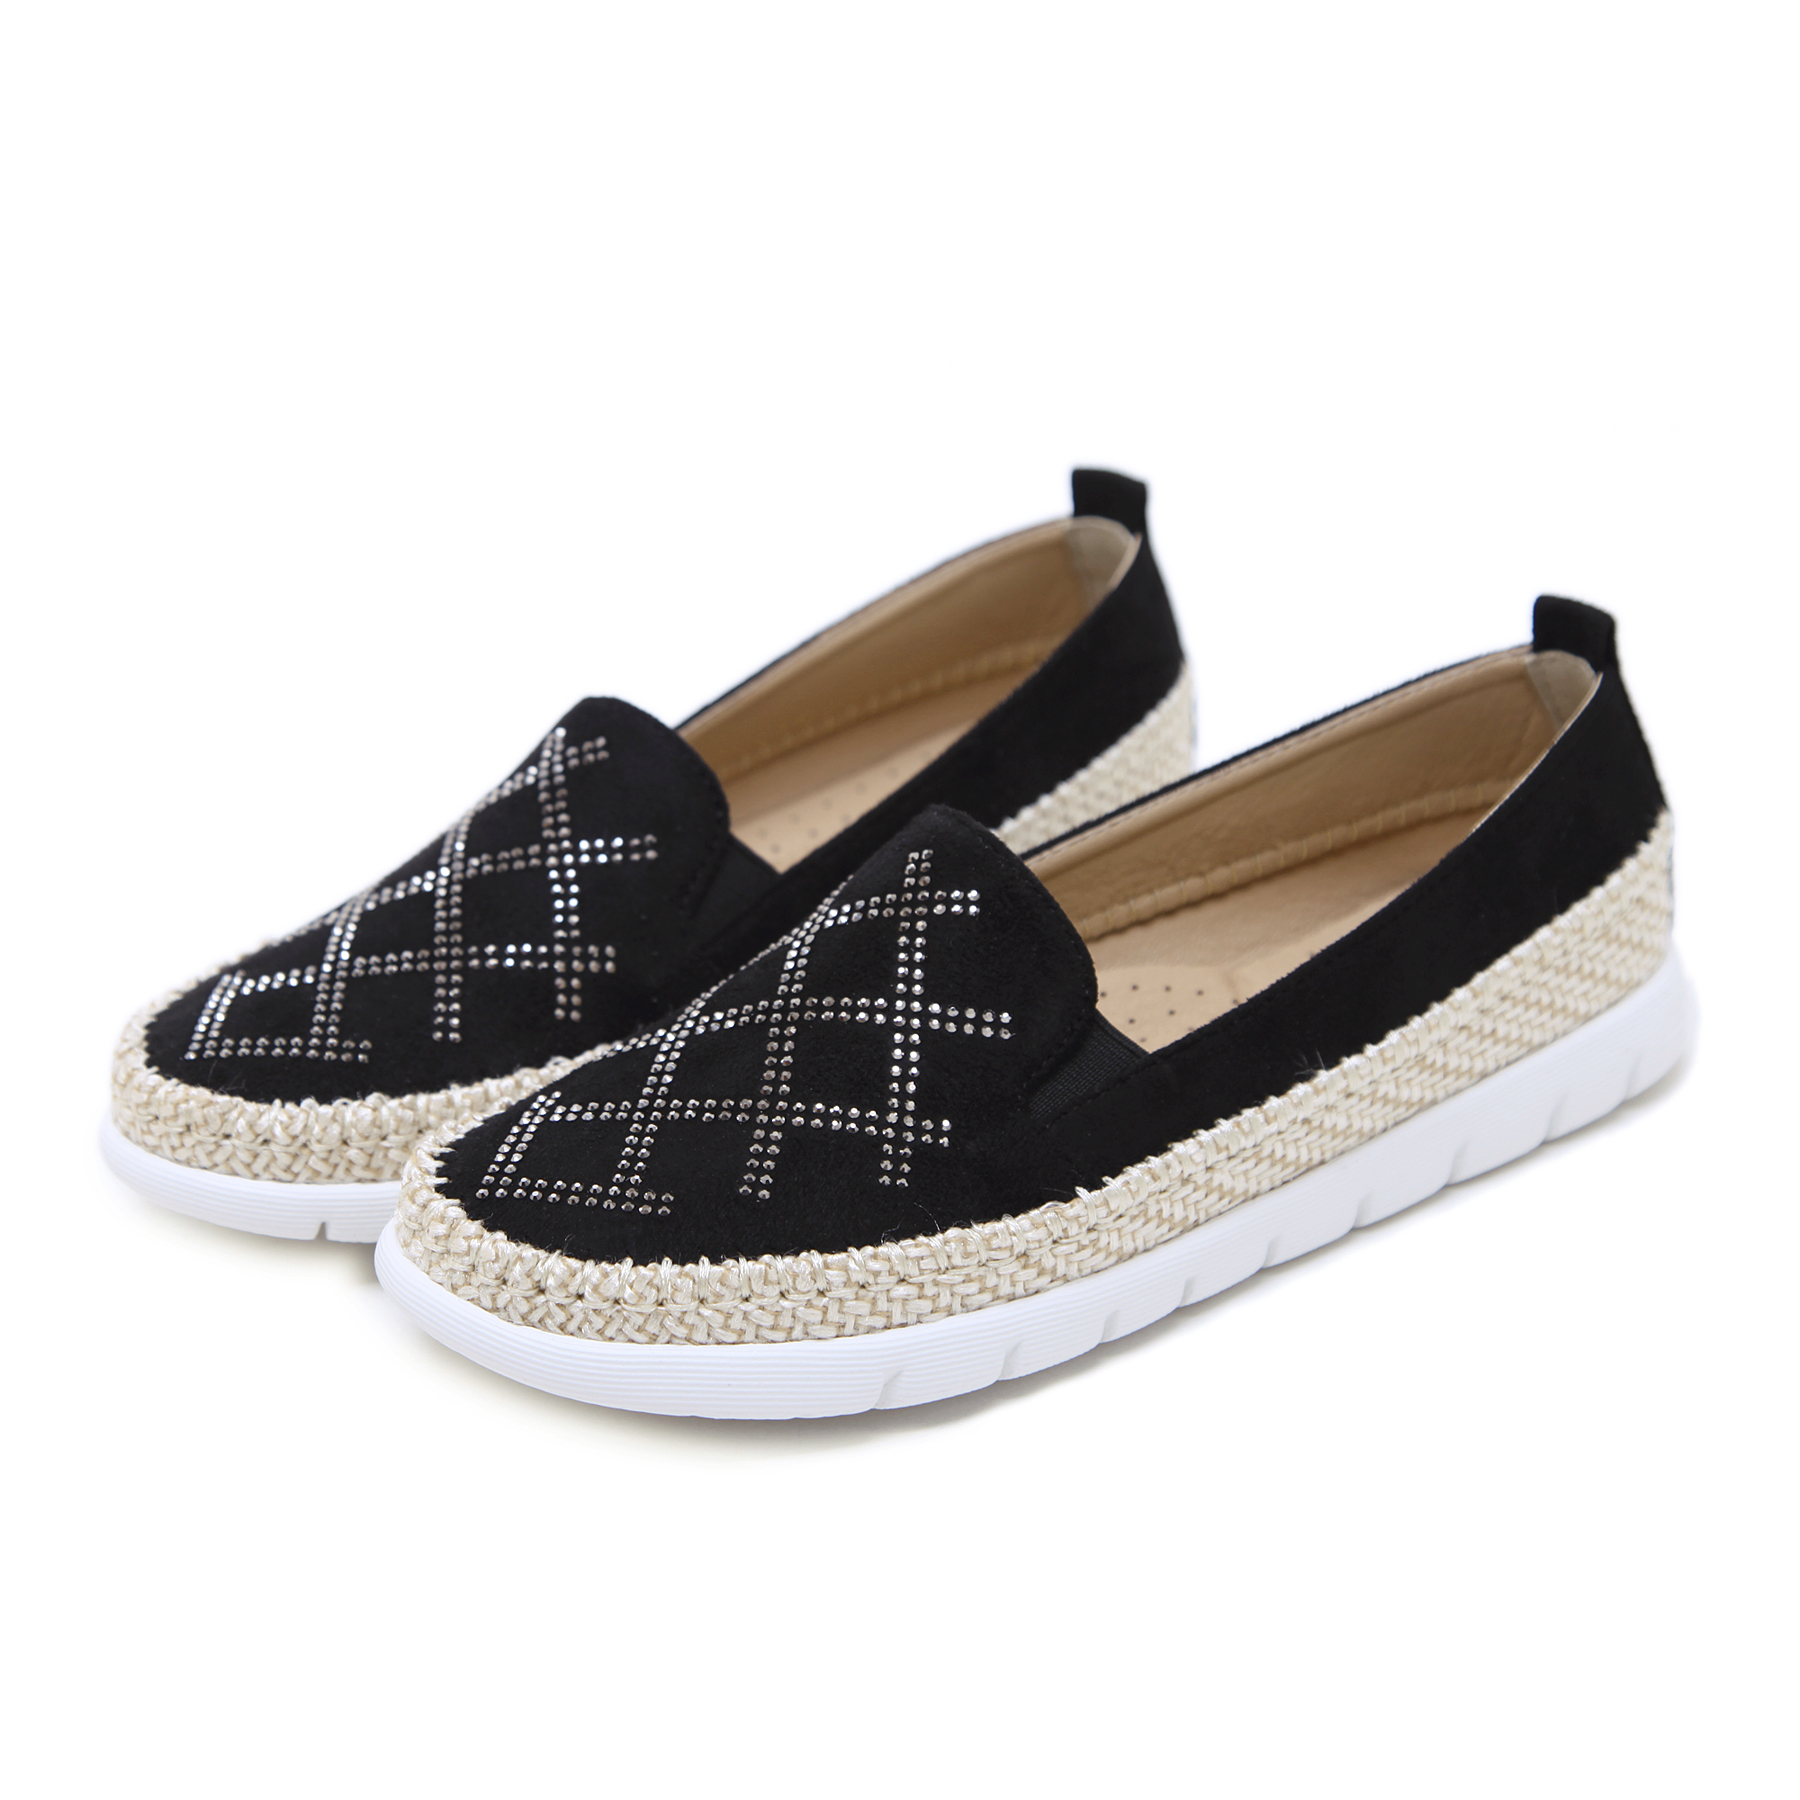 2019 Shoes Woman Loafers Shoes Rivet Spring Summer Women Rhinestone Hemp Rope Round Toe Flats Black